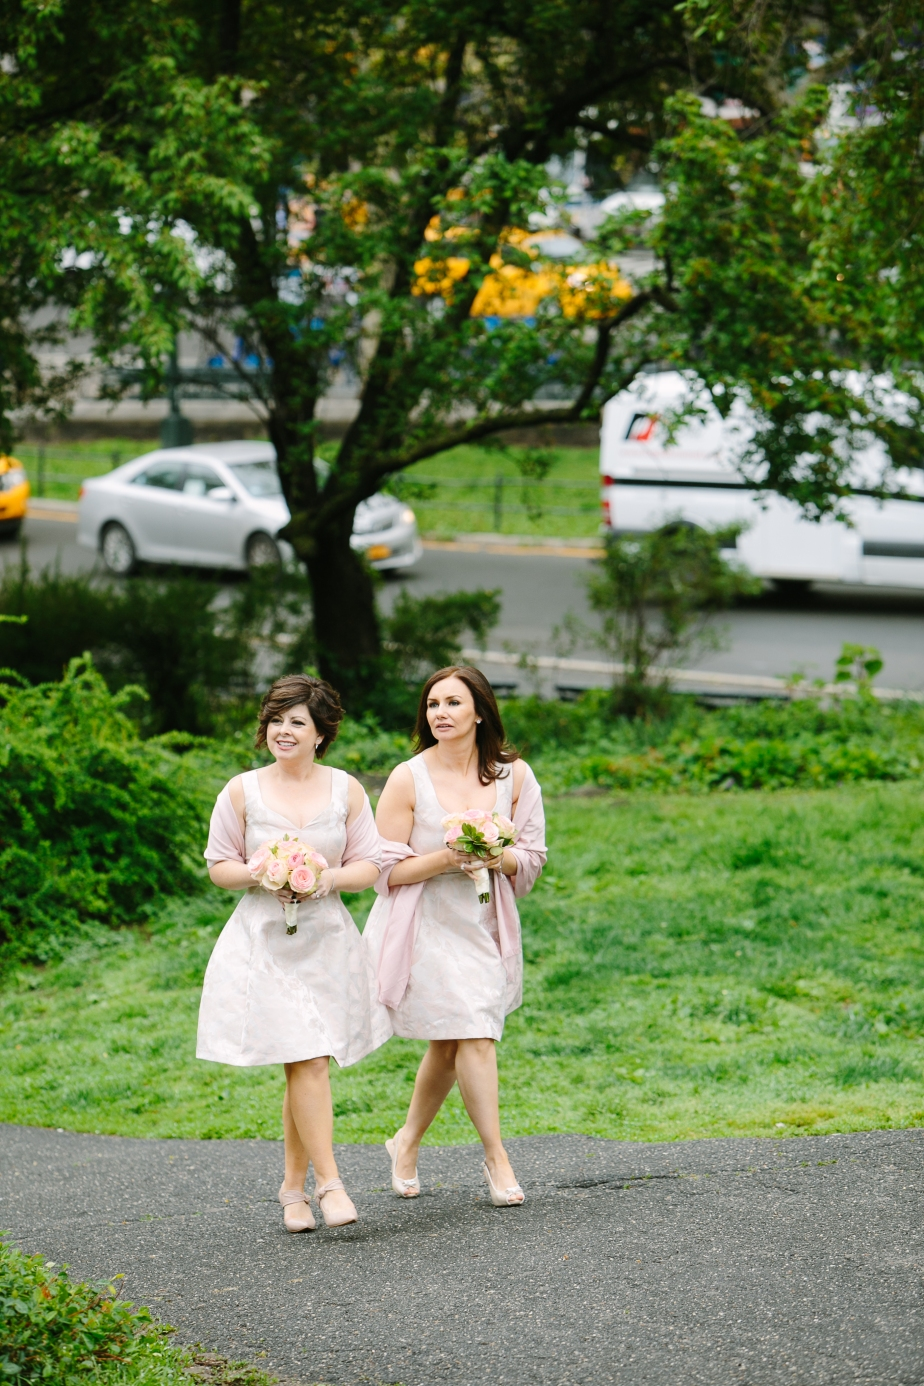 CopCot_centralpark_wedding_LR-6